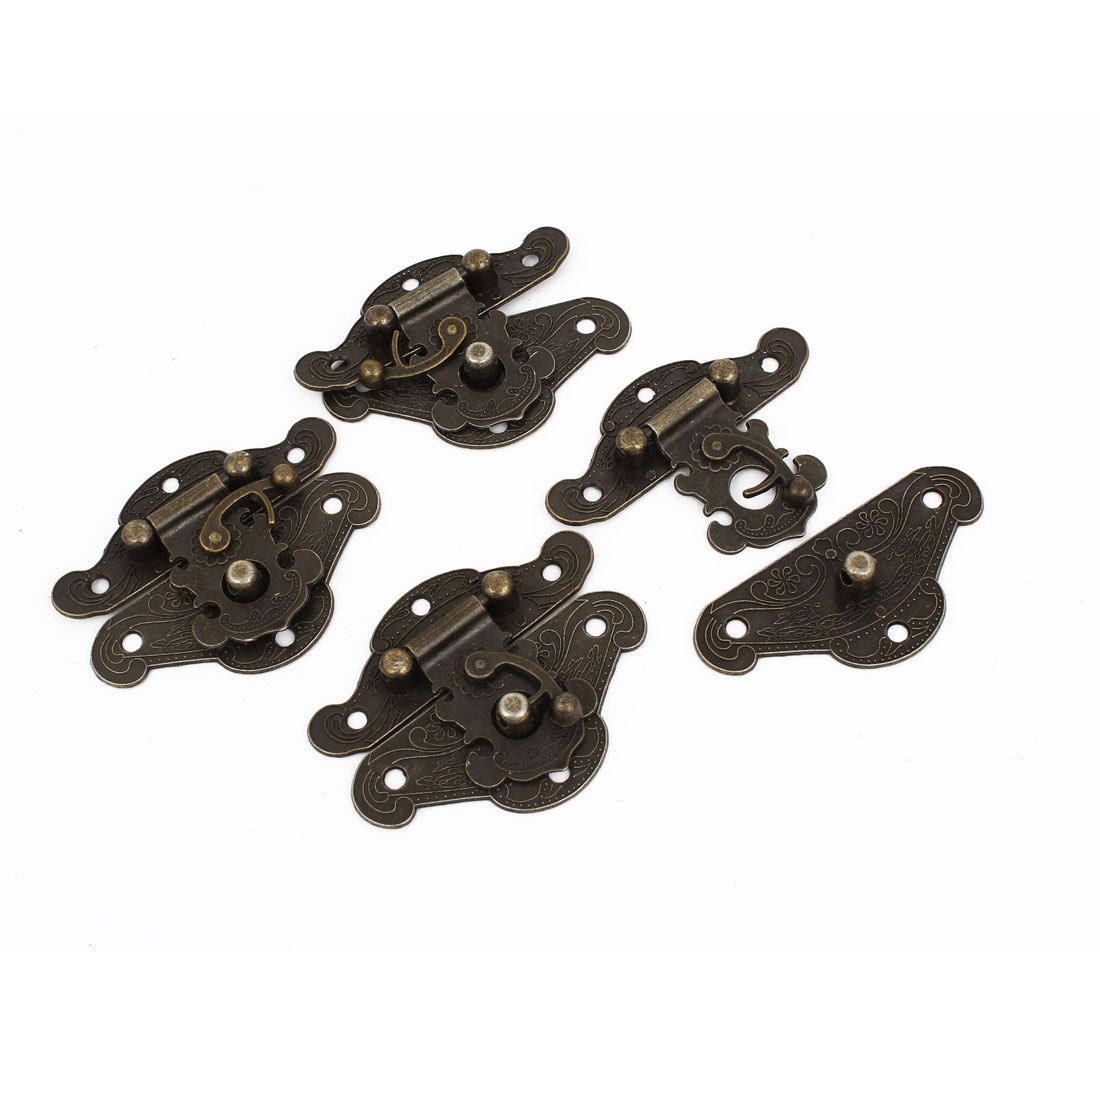 "4 Pcs Antique Wood Box Latch Sets Case Locking Hinge Bronze Tone 2.6"" Long"